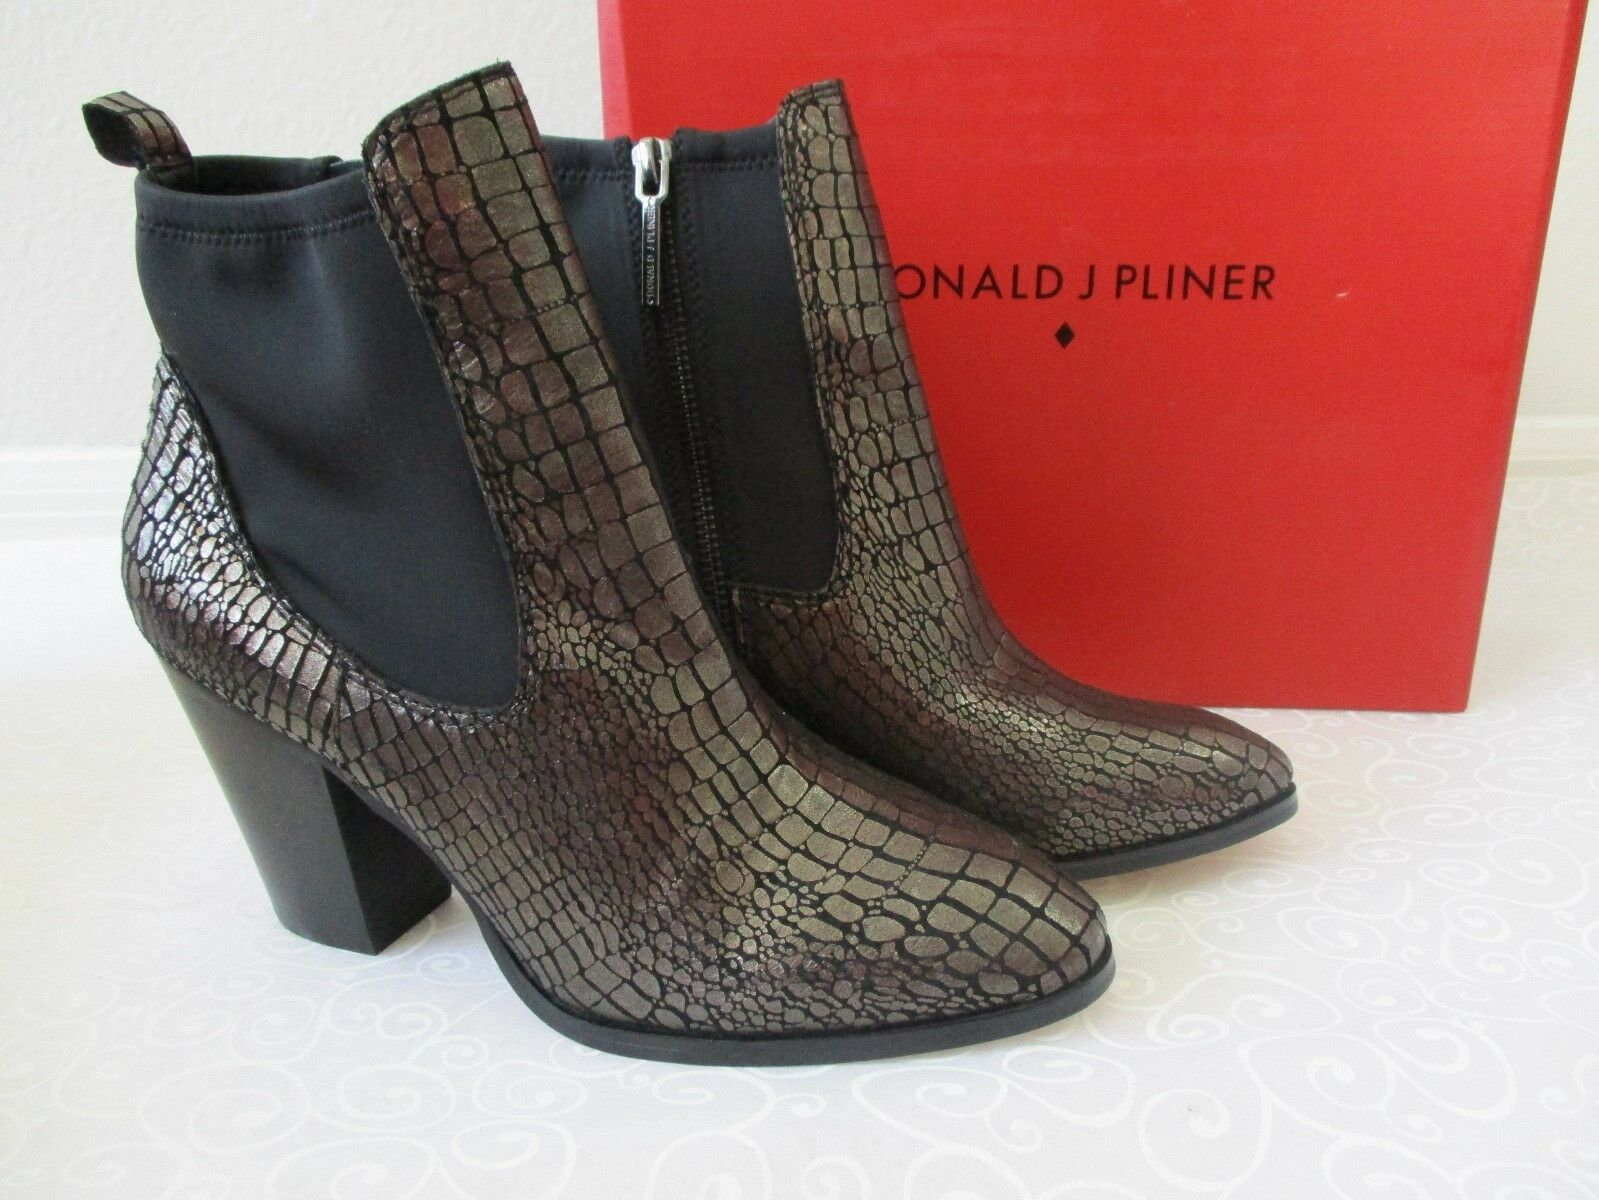 DONALD J PLINNER PEWTER METALLIC CROCCO ANKLE BOOTS SIZE 9 1/2 M - NEW W BOX